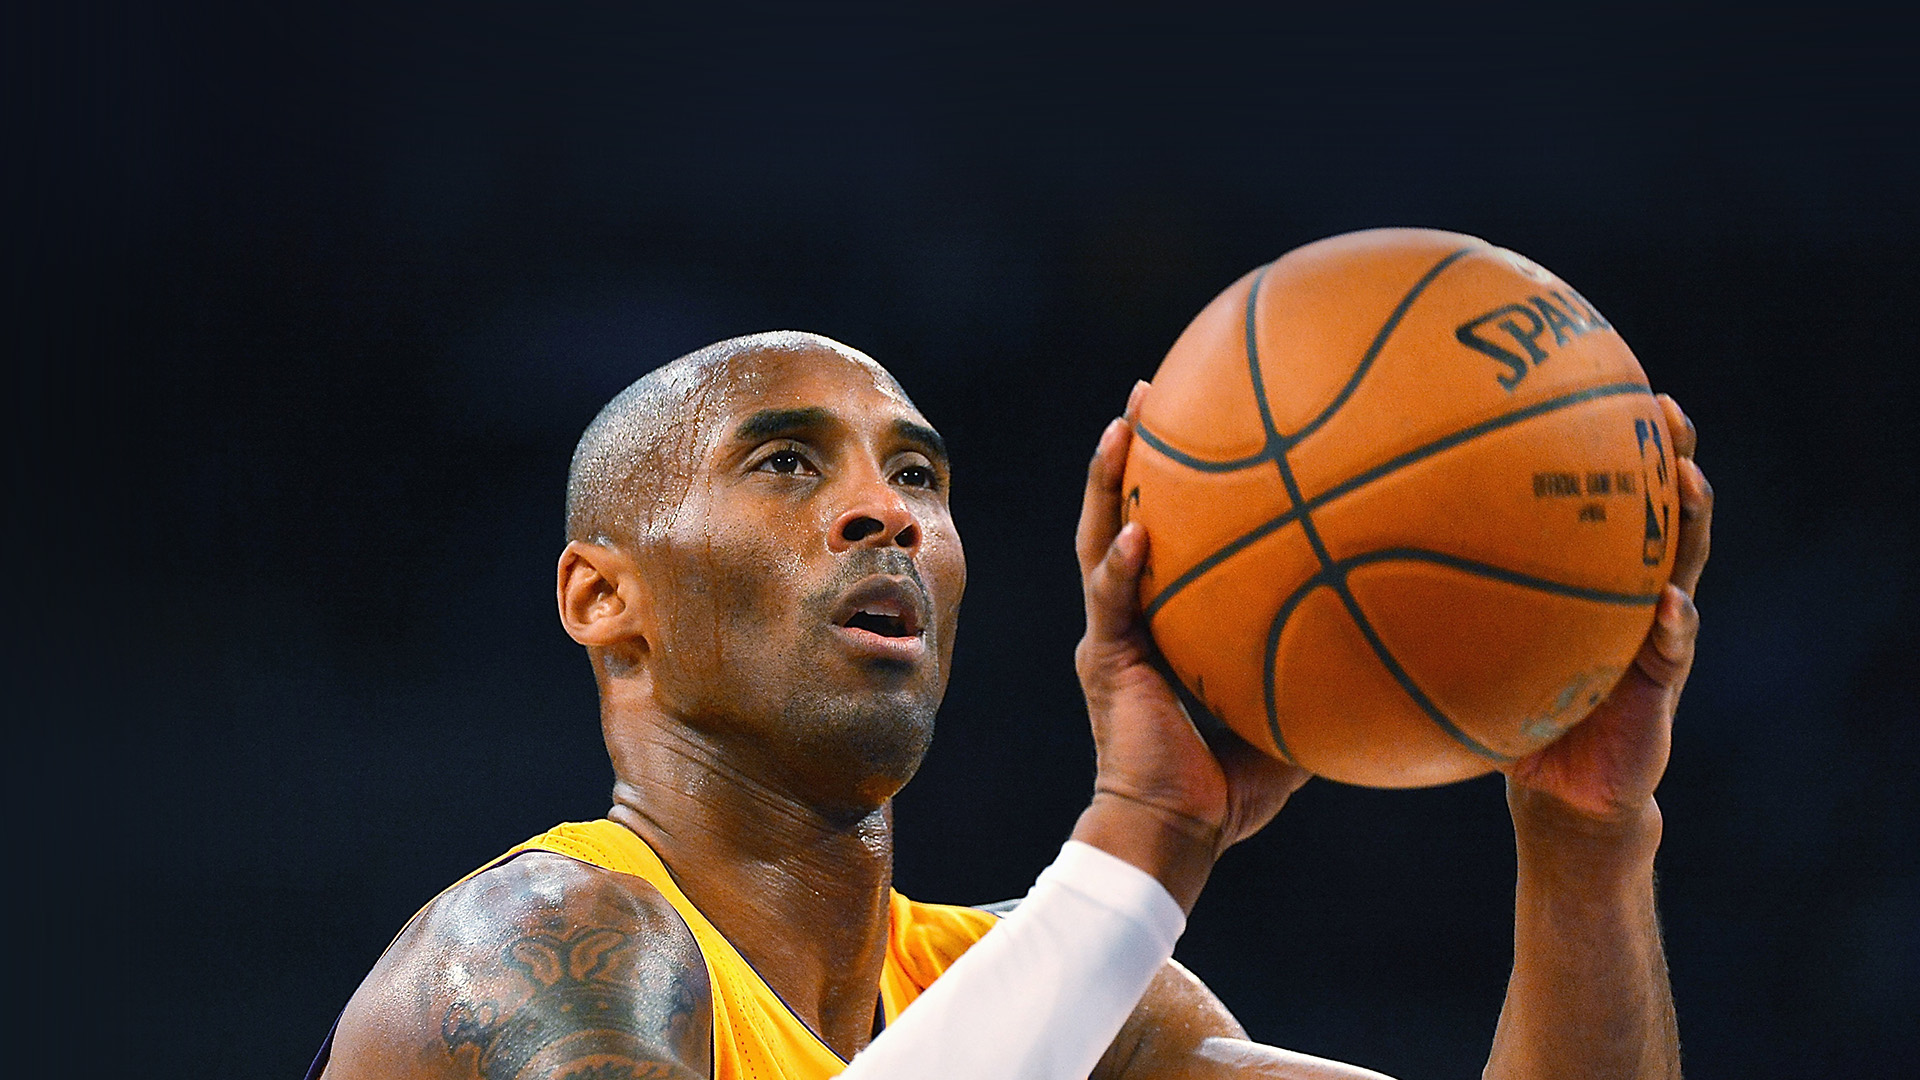 descriptive essay kobe bryant Lakers rule essay lakers rule essay submitted by los angeles lakers and kobe bryant essays career of nba superstar kobe bryant , rewarding note: this rule applies to three or more items rule 2: place a comma between two descriptive words only if they are interchangeable.